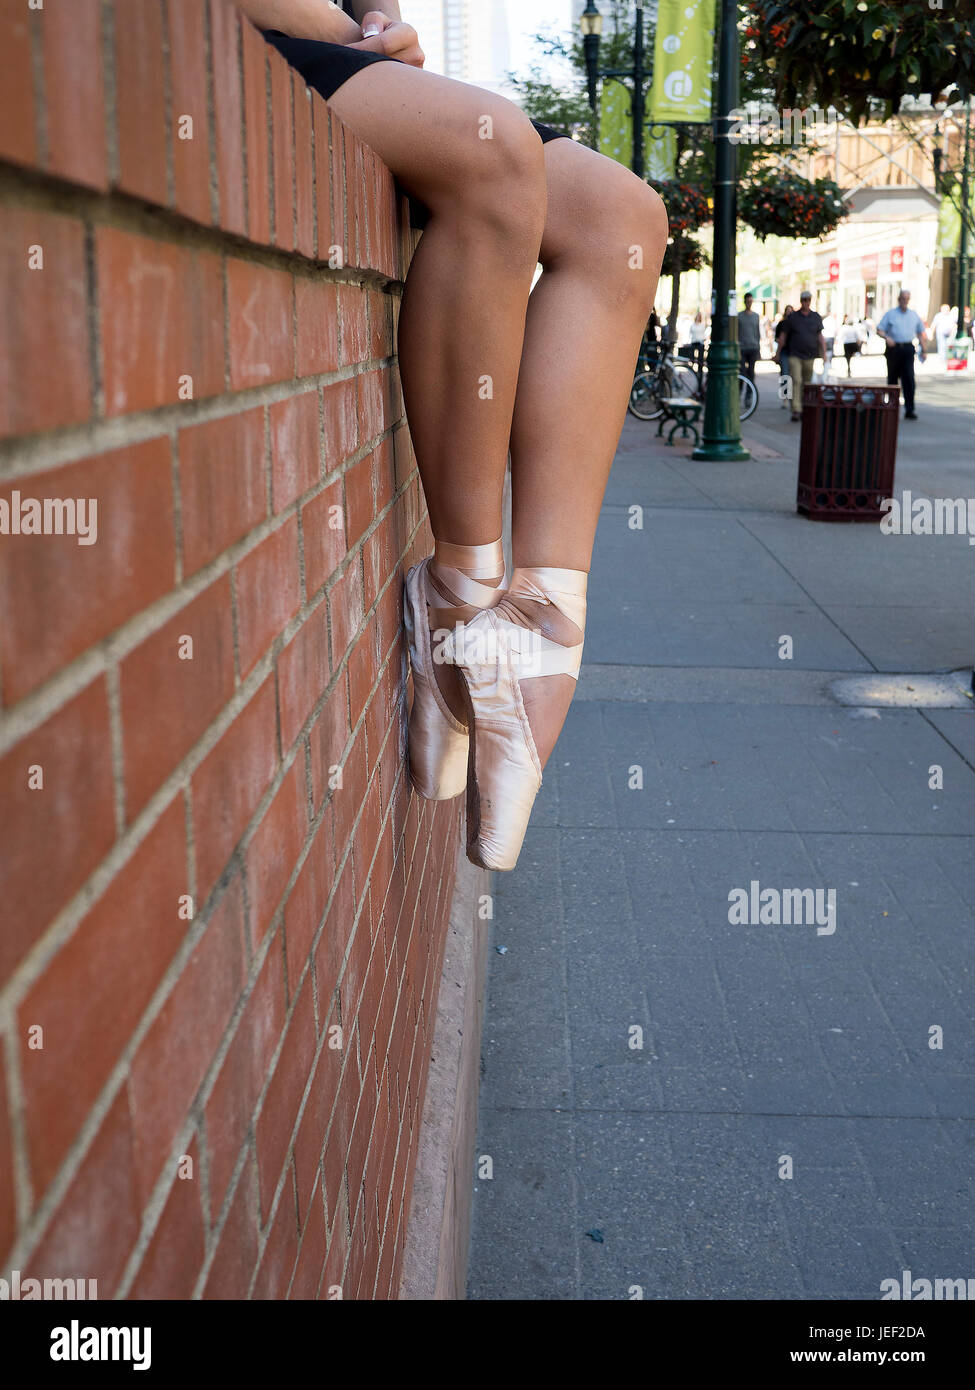 Legs and Feet of a Ballet dancer in Pointe Shoes In an Urban Area - Stock Image